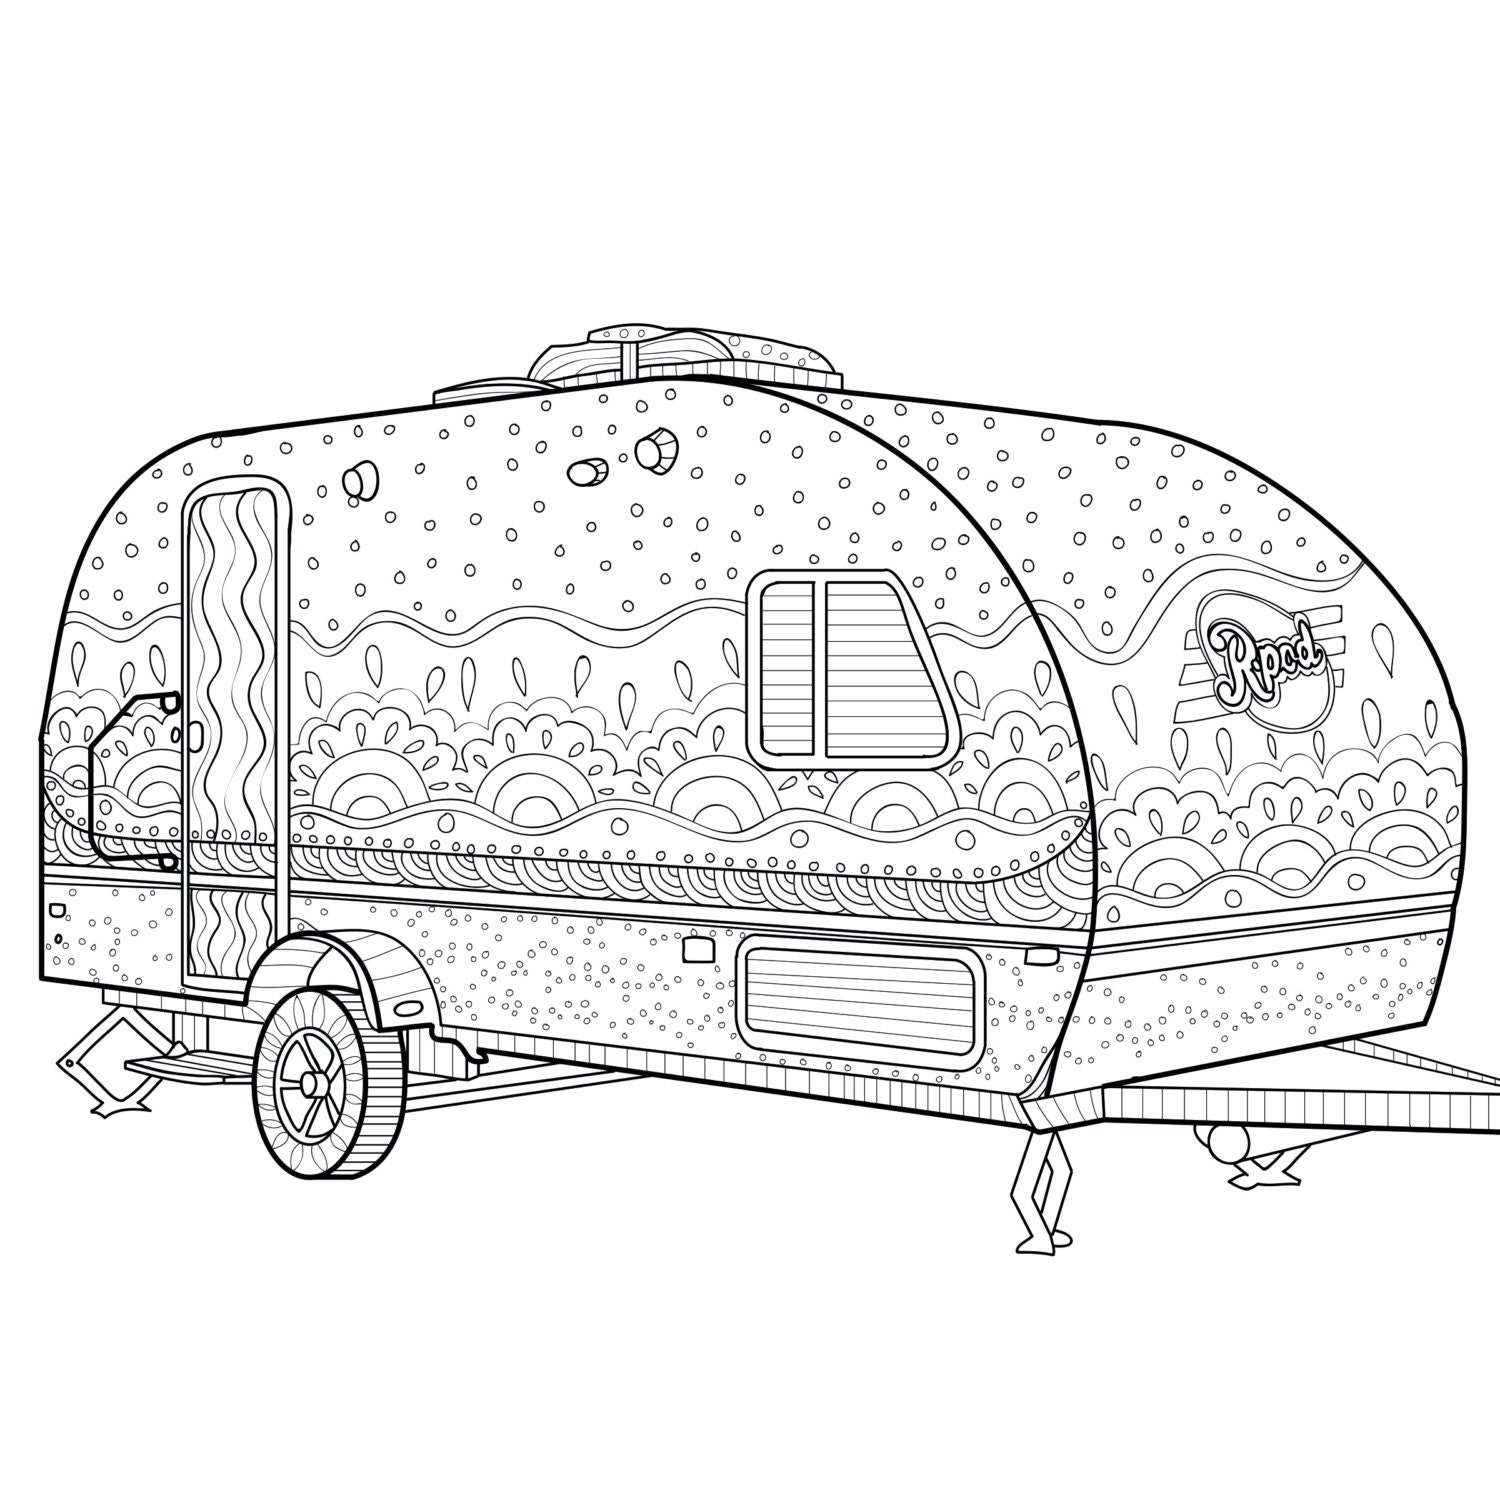 Printable Coloring Page Zentangle Camping Coloring Book | Etsy